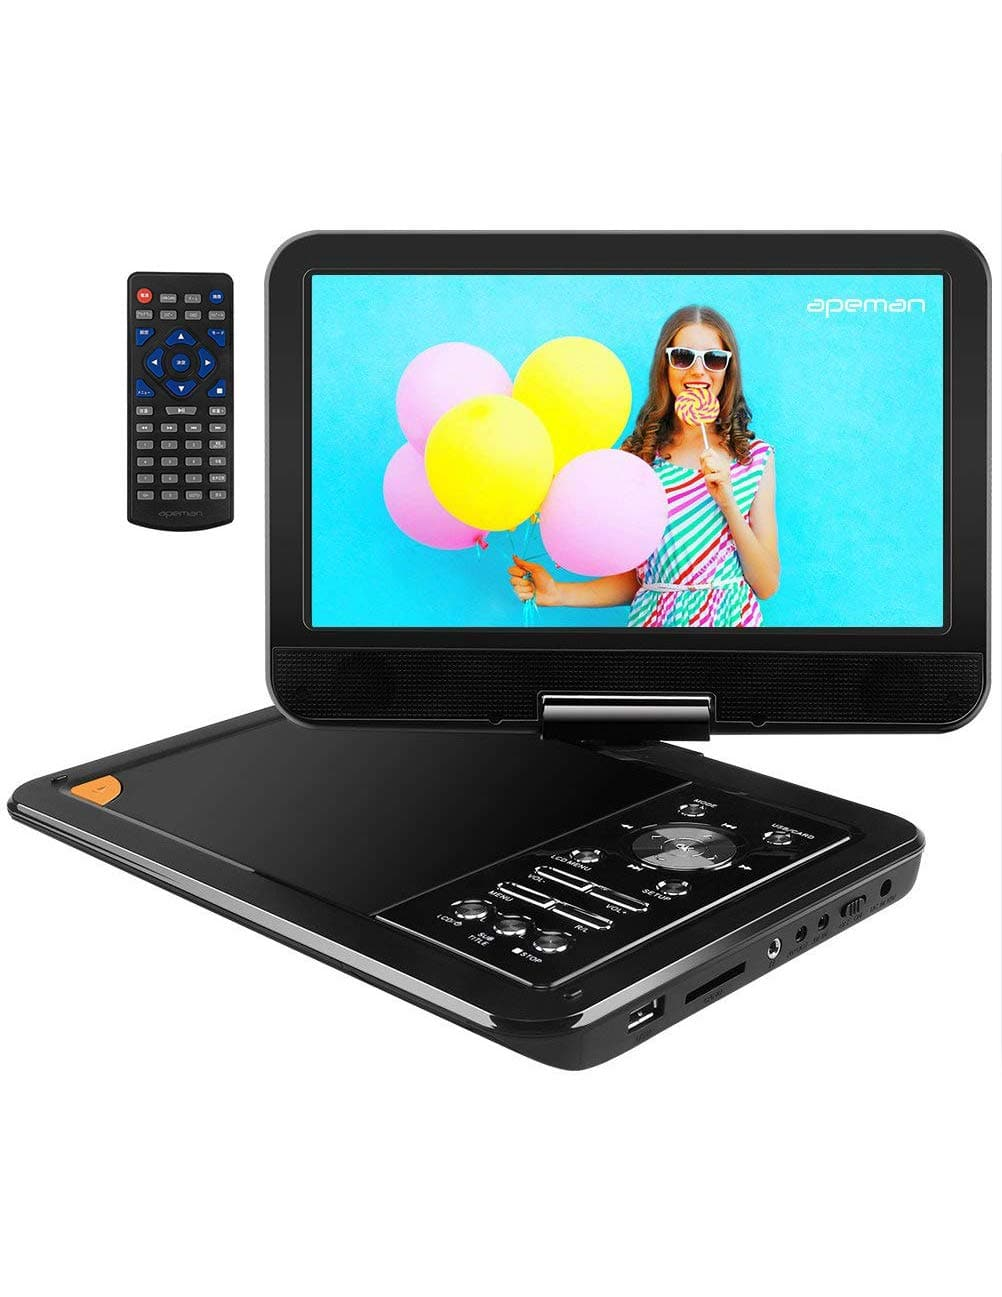 APEMAN 9.5'' Portable DVD Player with Swivel Screen, Remote Controller, and a Built-In Rechargeable Battery for $39.94 + FS